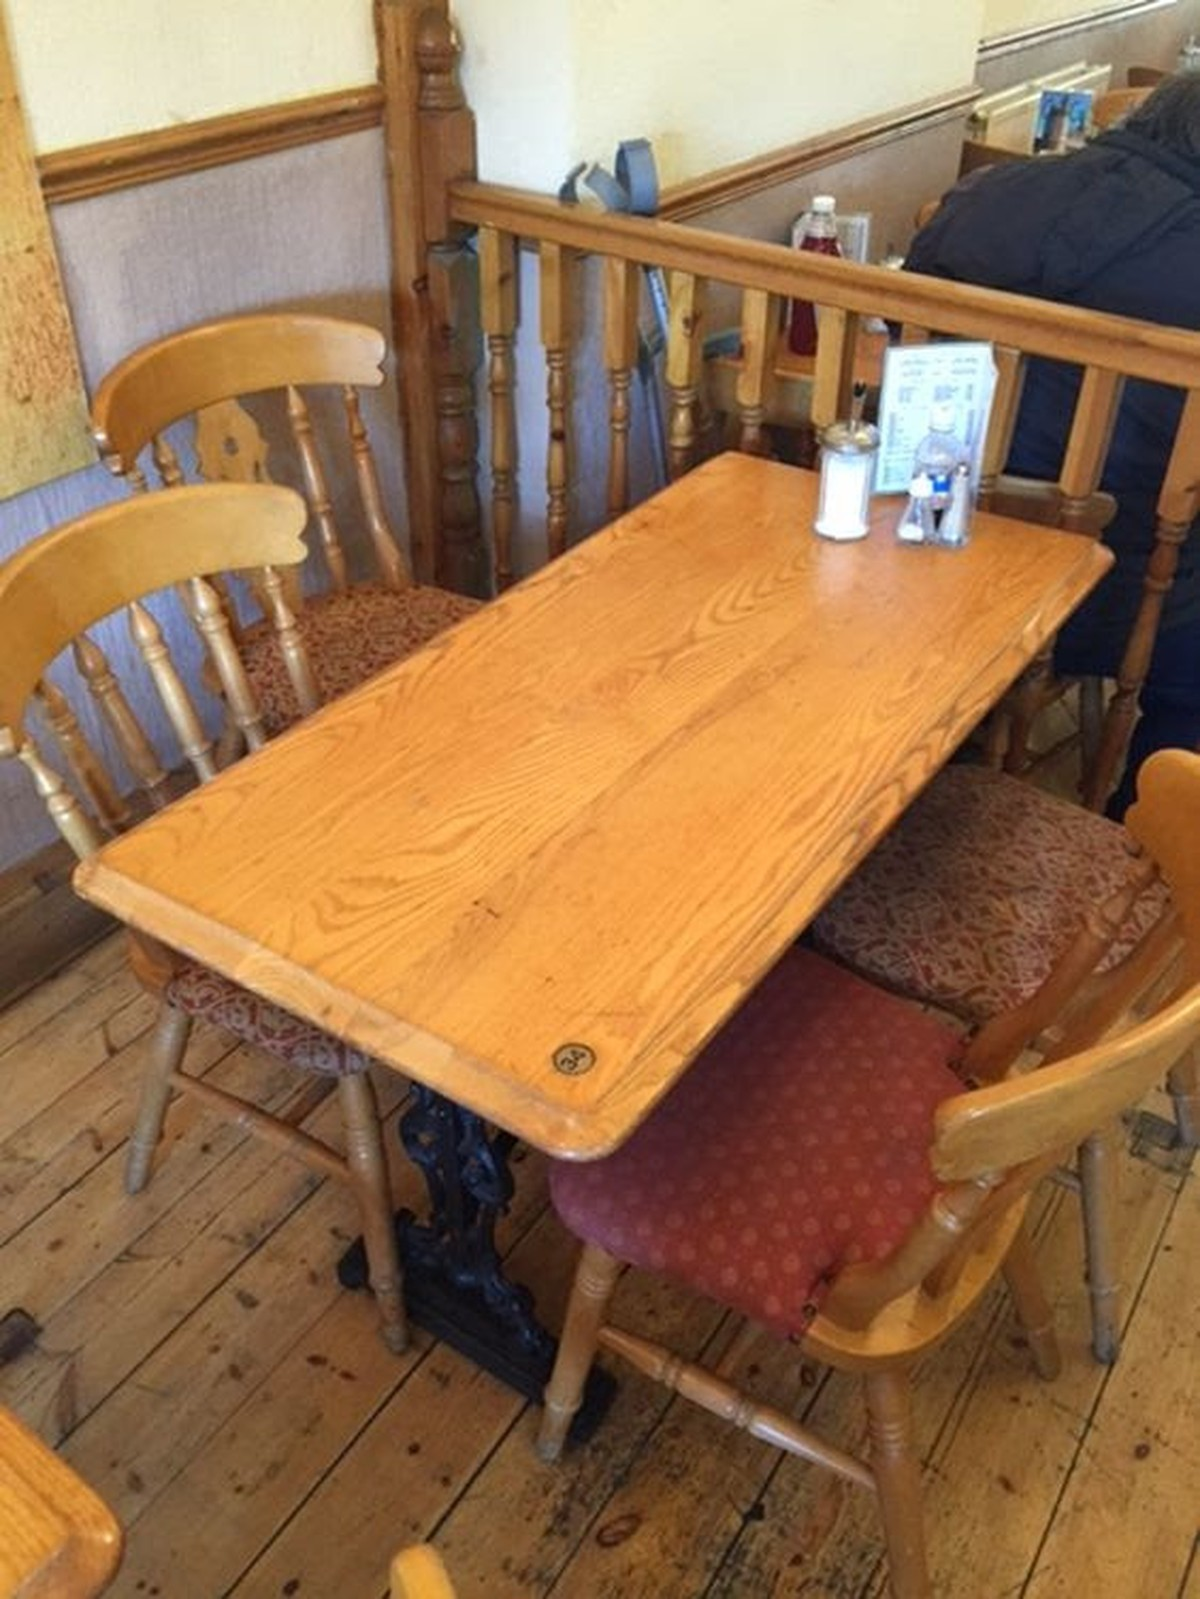 Cafe Chairs For Sale Secondhand Chairs And Tables Restaurant Chairs Cafe